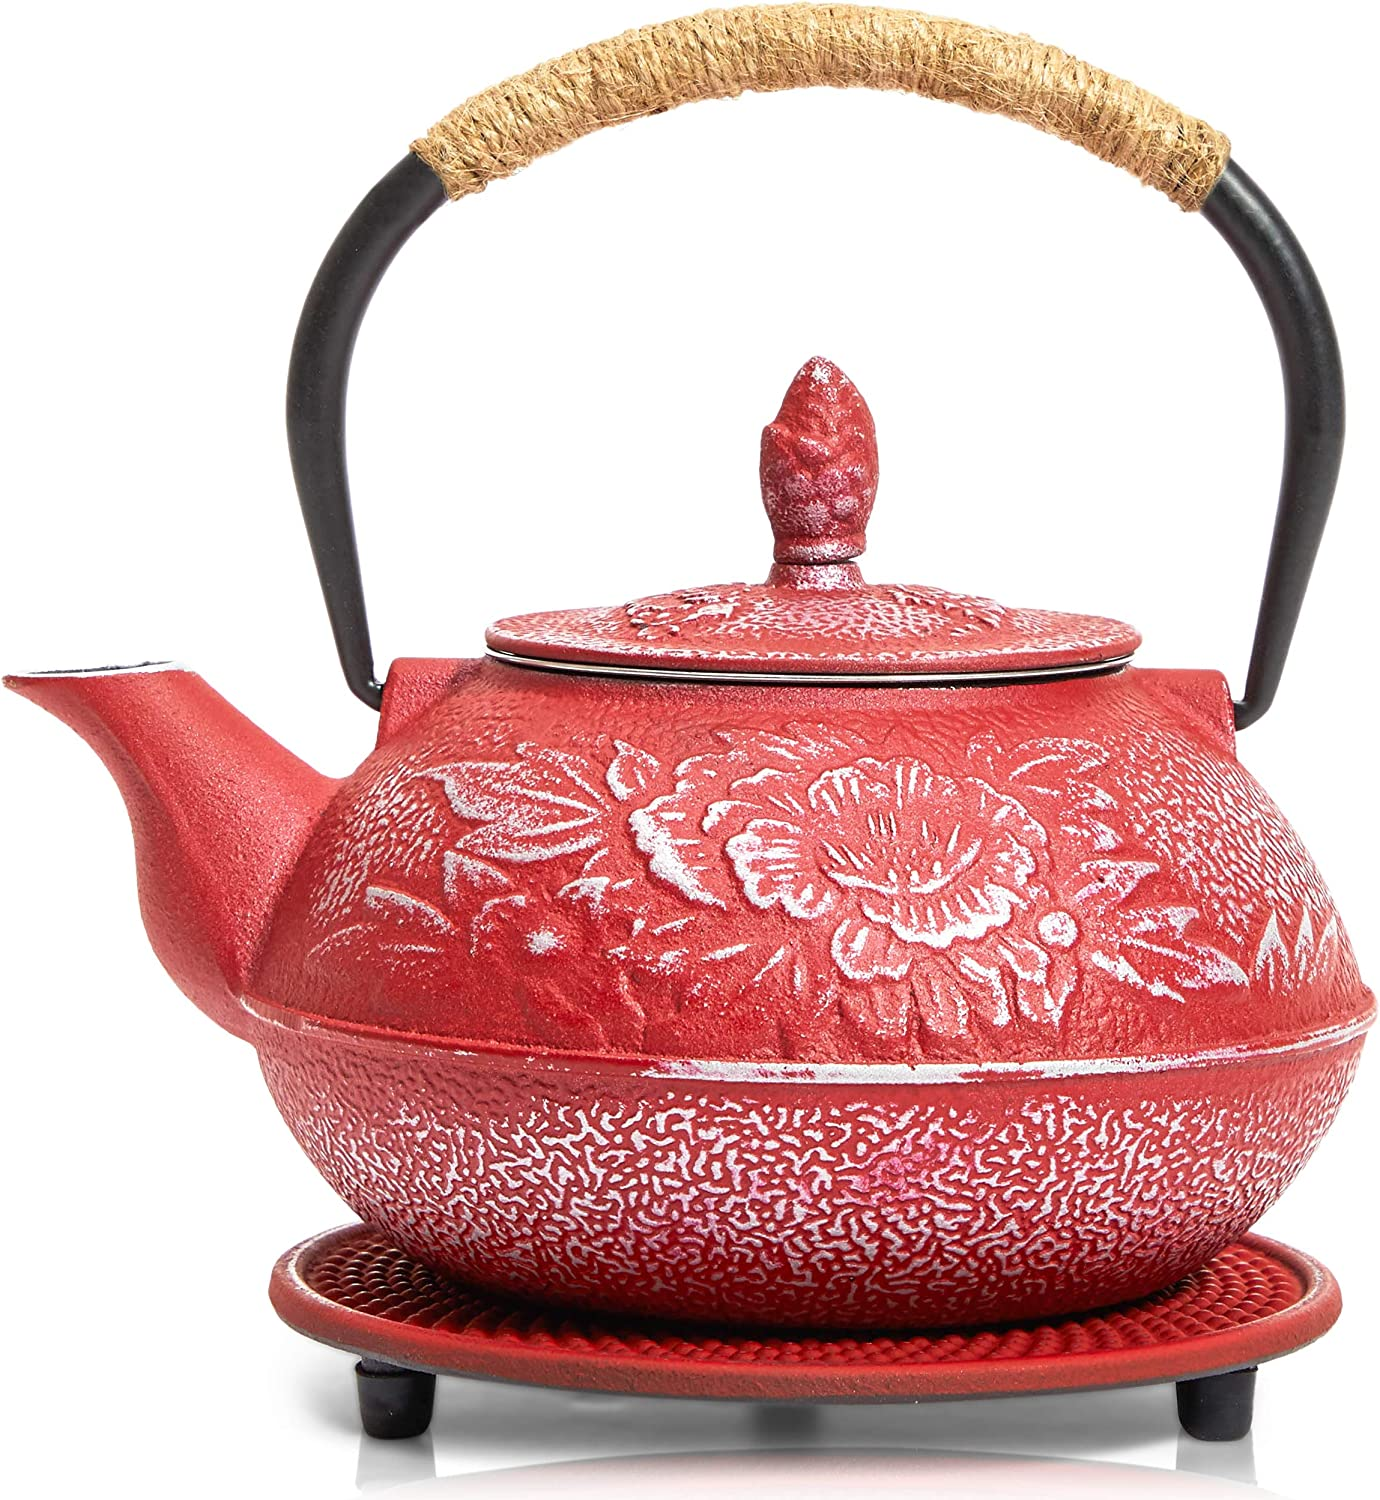 Red Cast Iron Japanese Teapot with Handle, Infuser, and Trivet (800 ml, 27 oz)